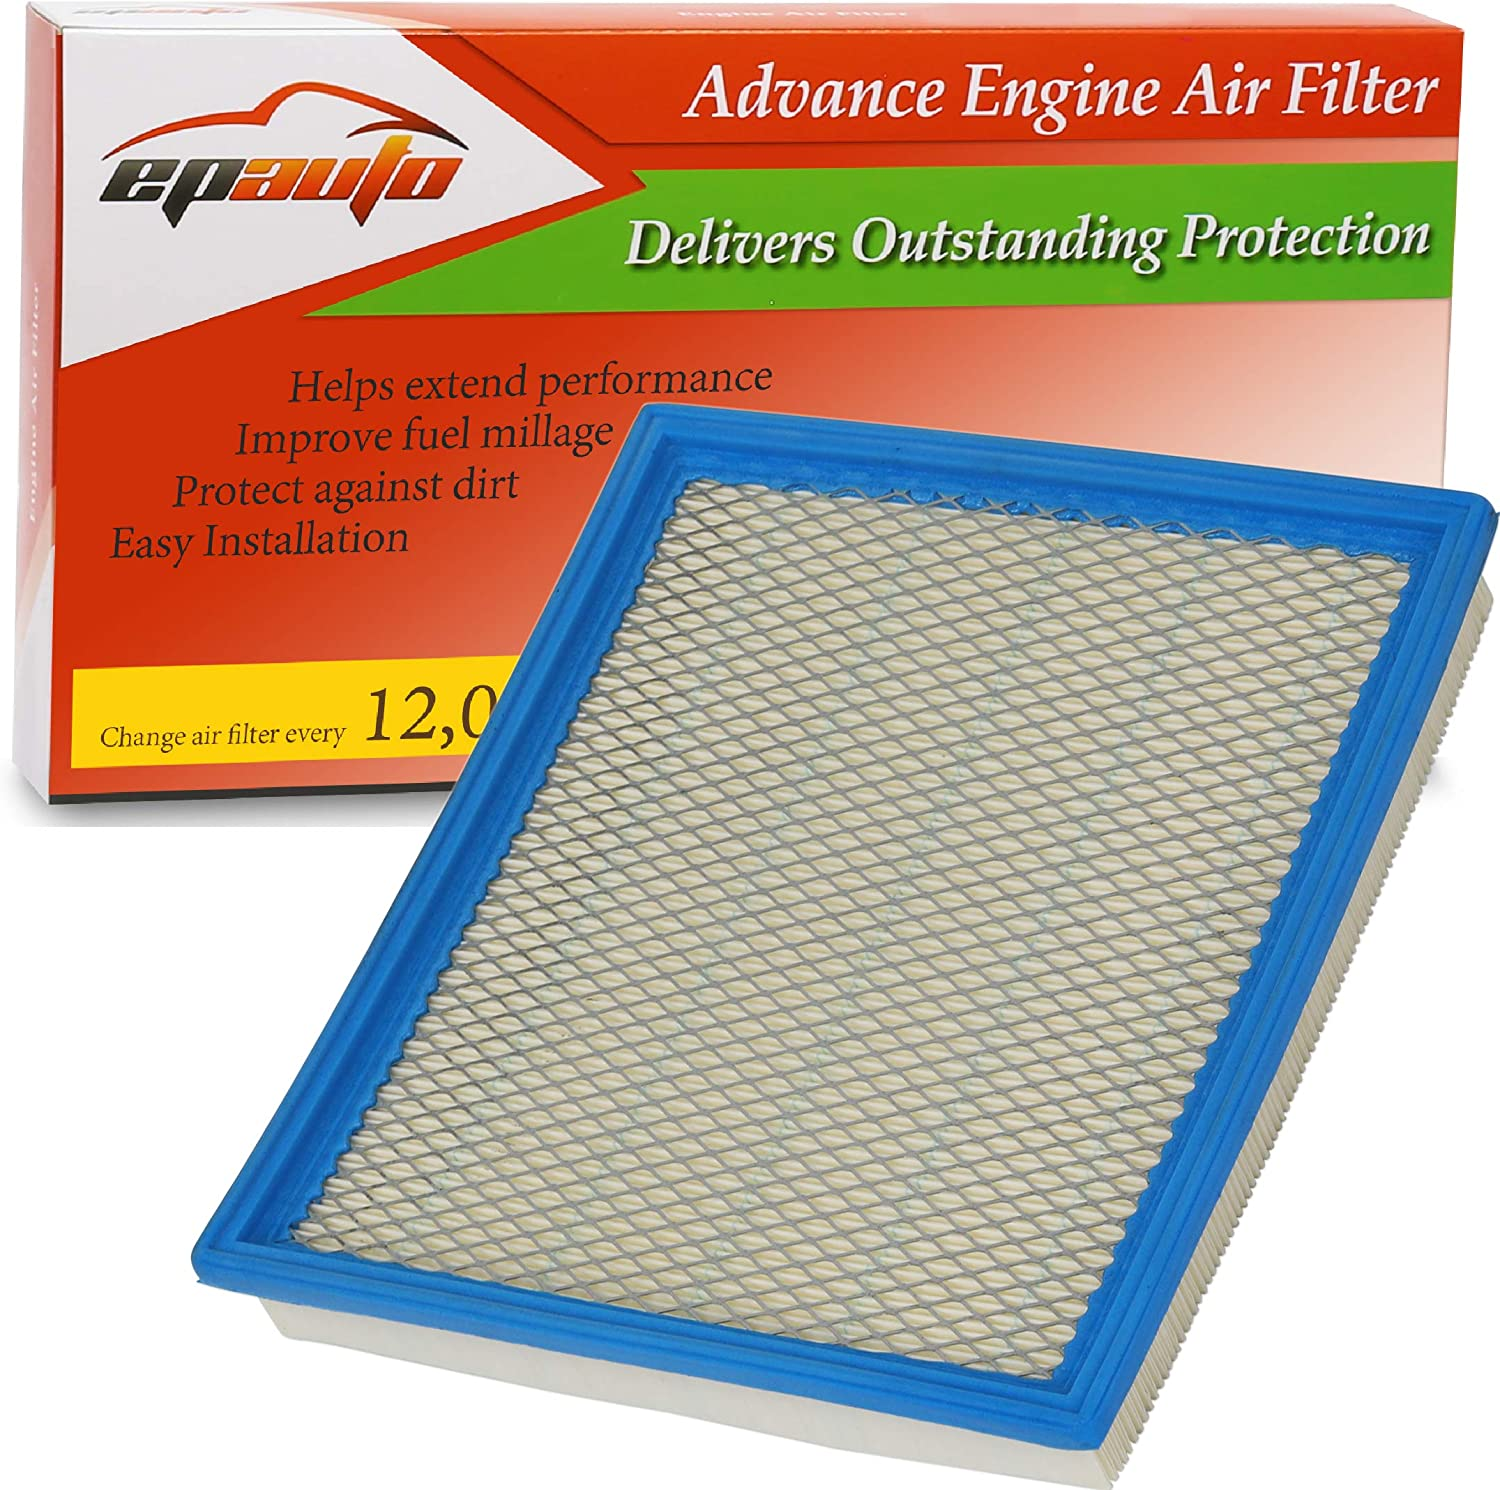 Frontier V6 CA7440 2012-2019 EPAuto GP440 NV1500 Armada 2005-2015 2004-2010 2005-2019 Replacement for Infiniti//Nissan//Suzuki//Jeep Extra Guard Panel Air Filter for QX56